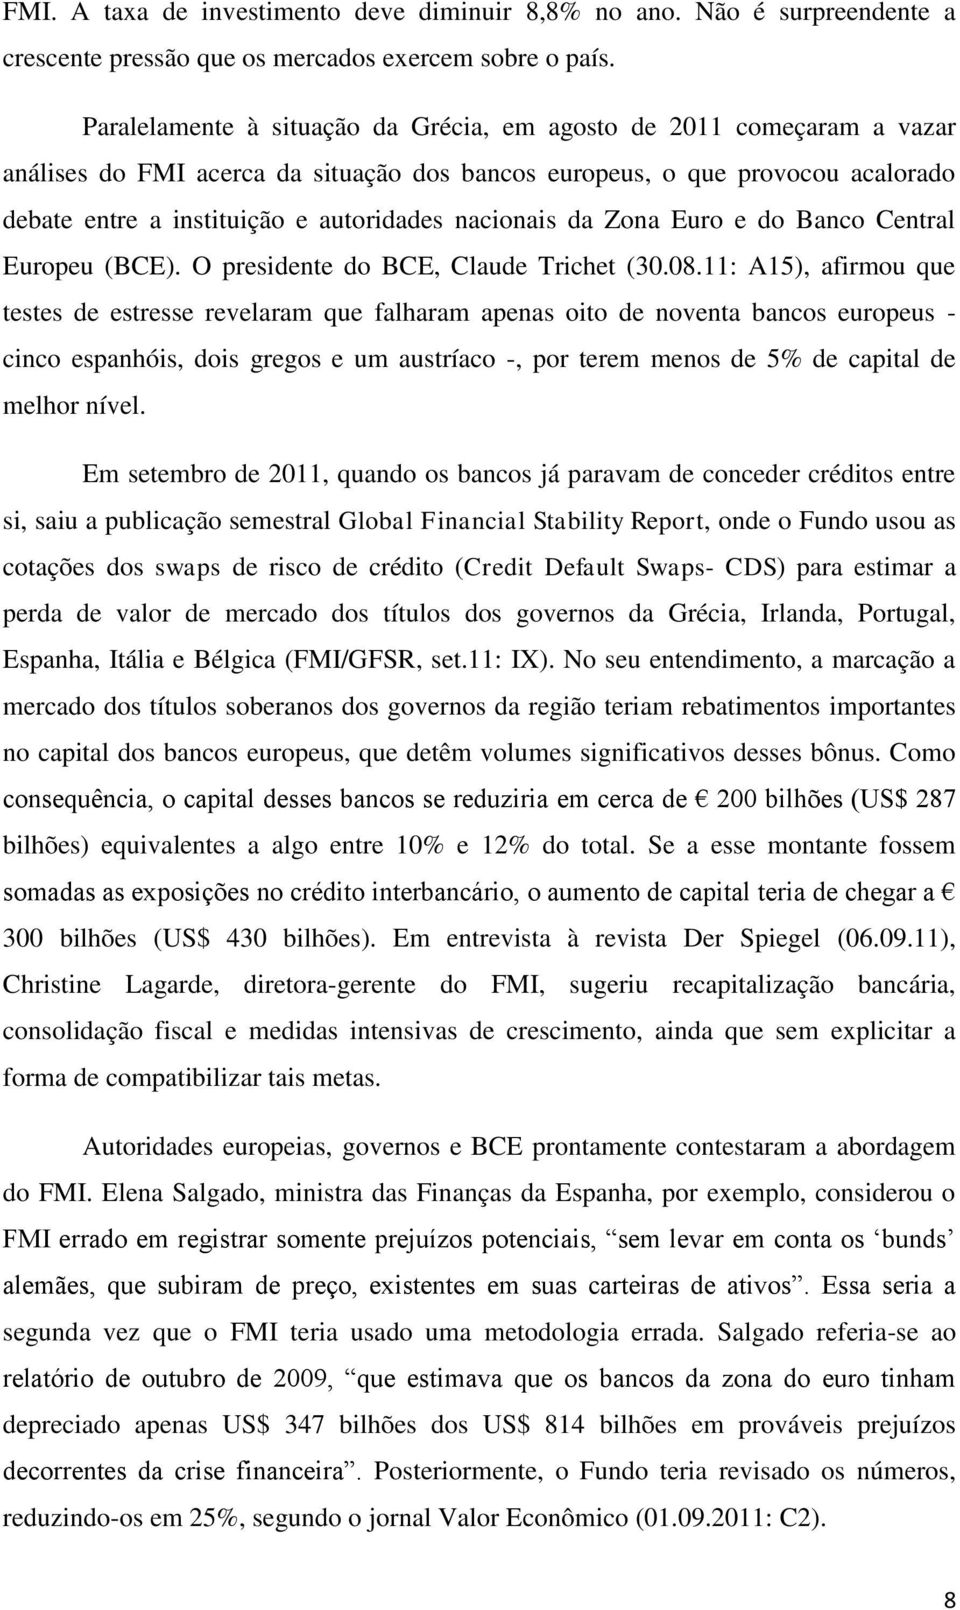 nacionais da Zona Euro e do Banco Central Europeu (BCE). O presidente do BCE, Claude Trichet (30.08.